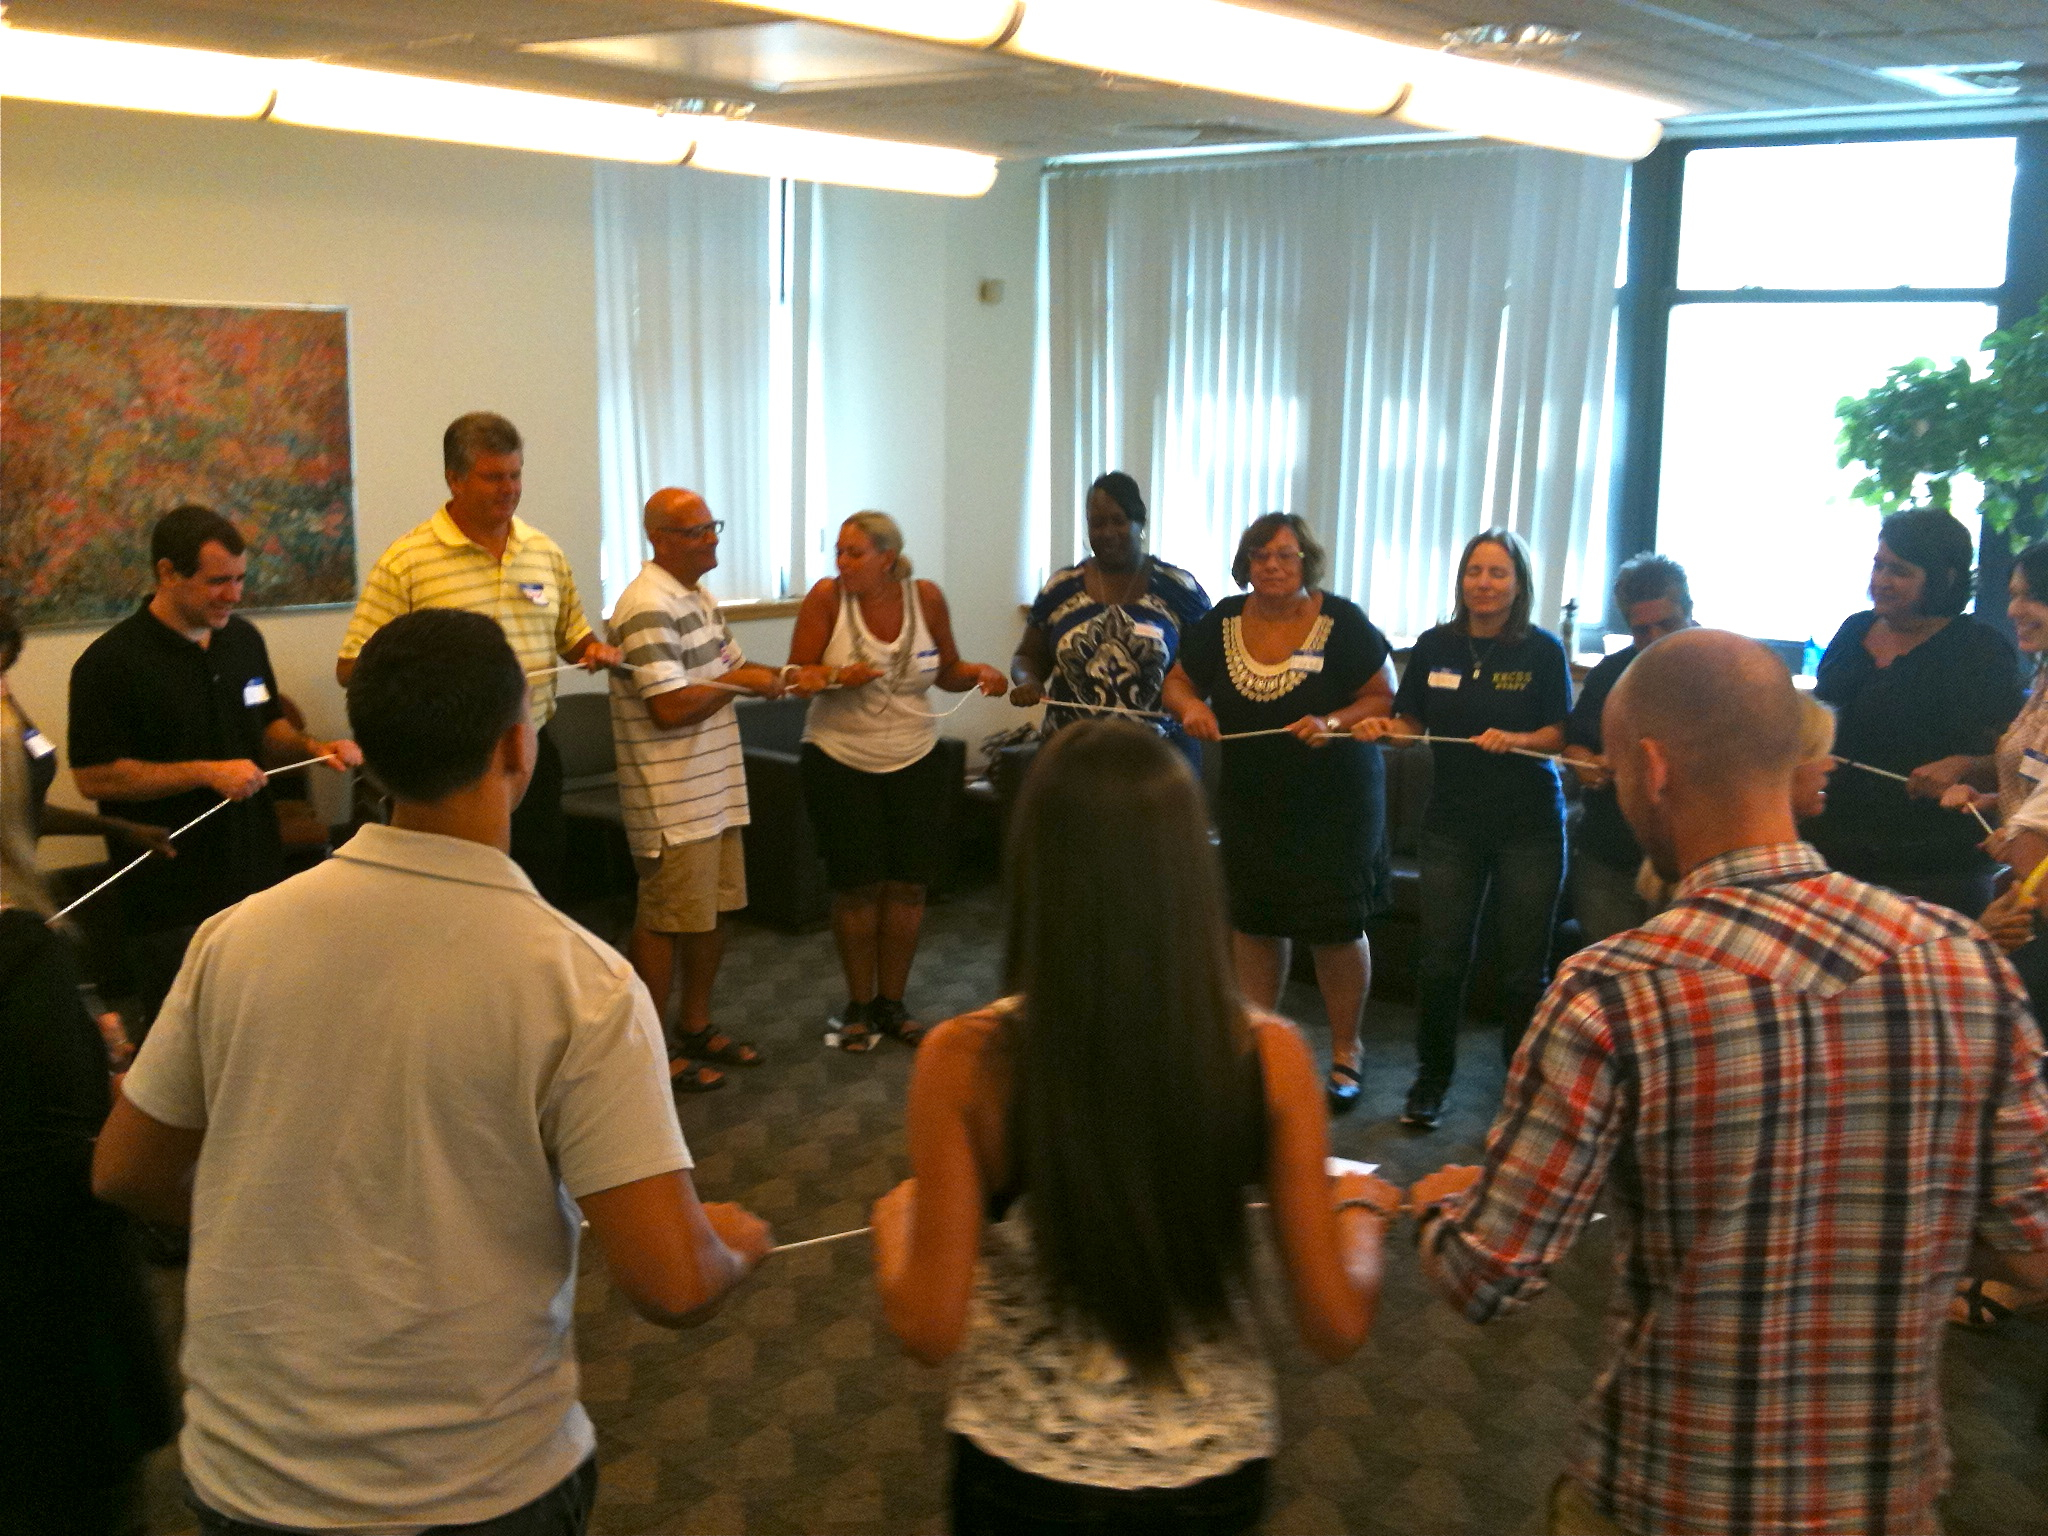 Interactive activities such as the Talking Rope provide engaging, low-risk opportunities to examine and enhance group dynamics and productivity.